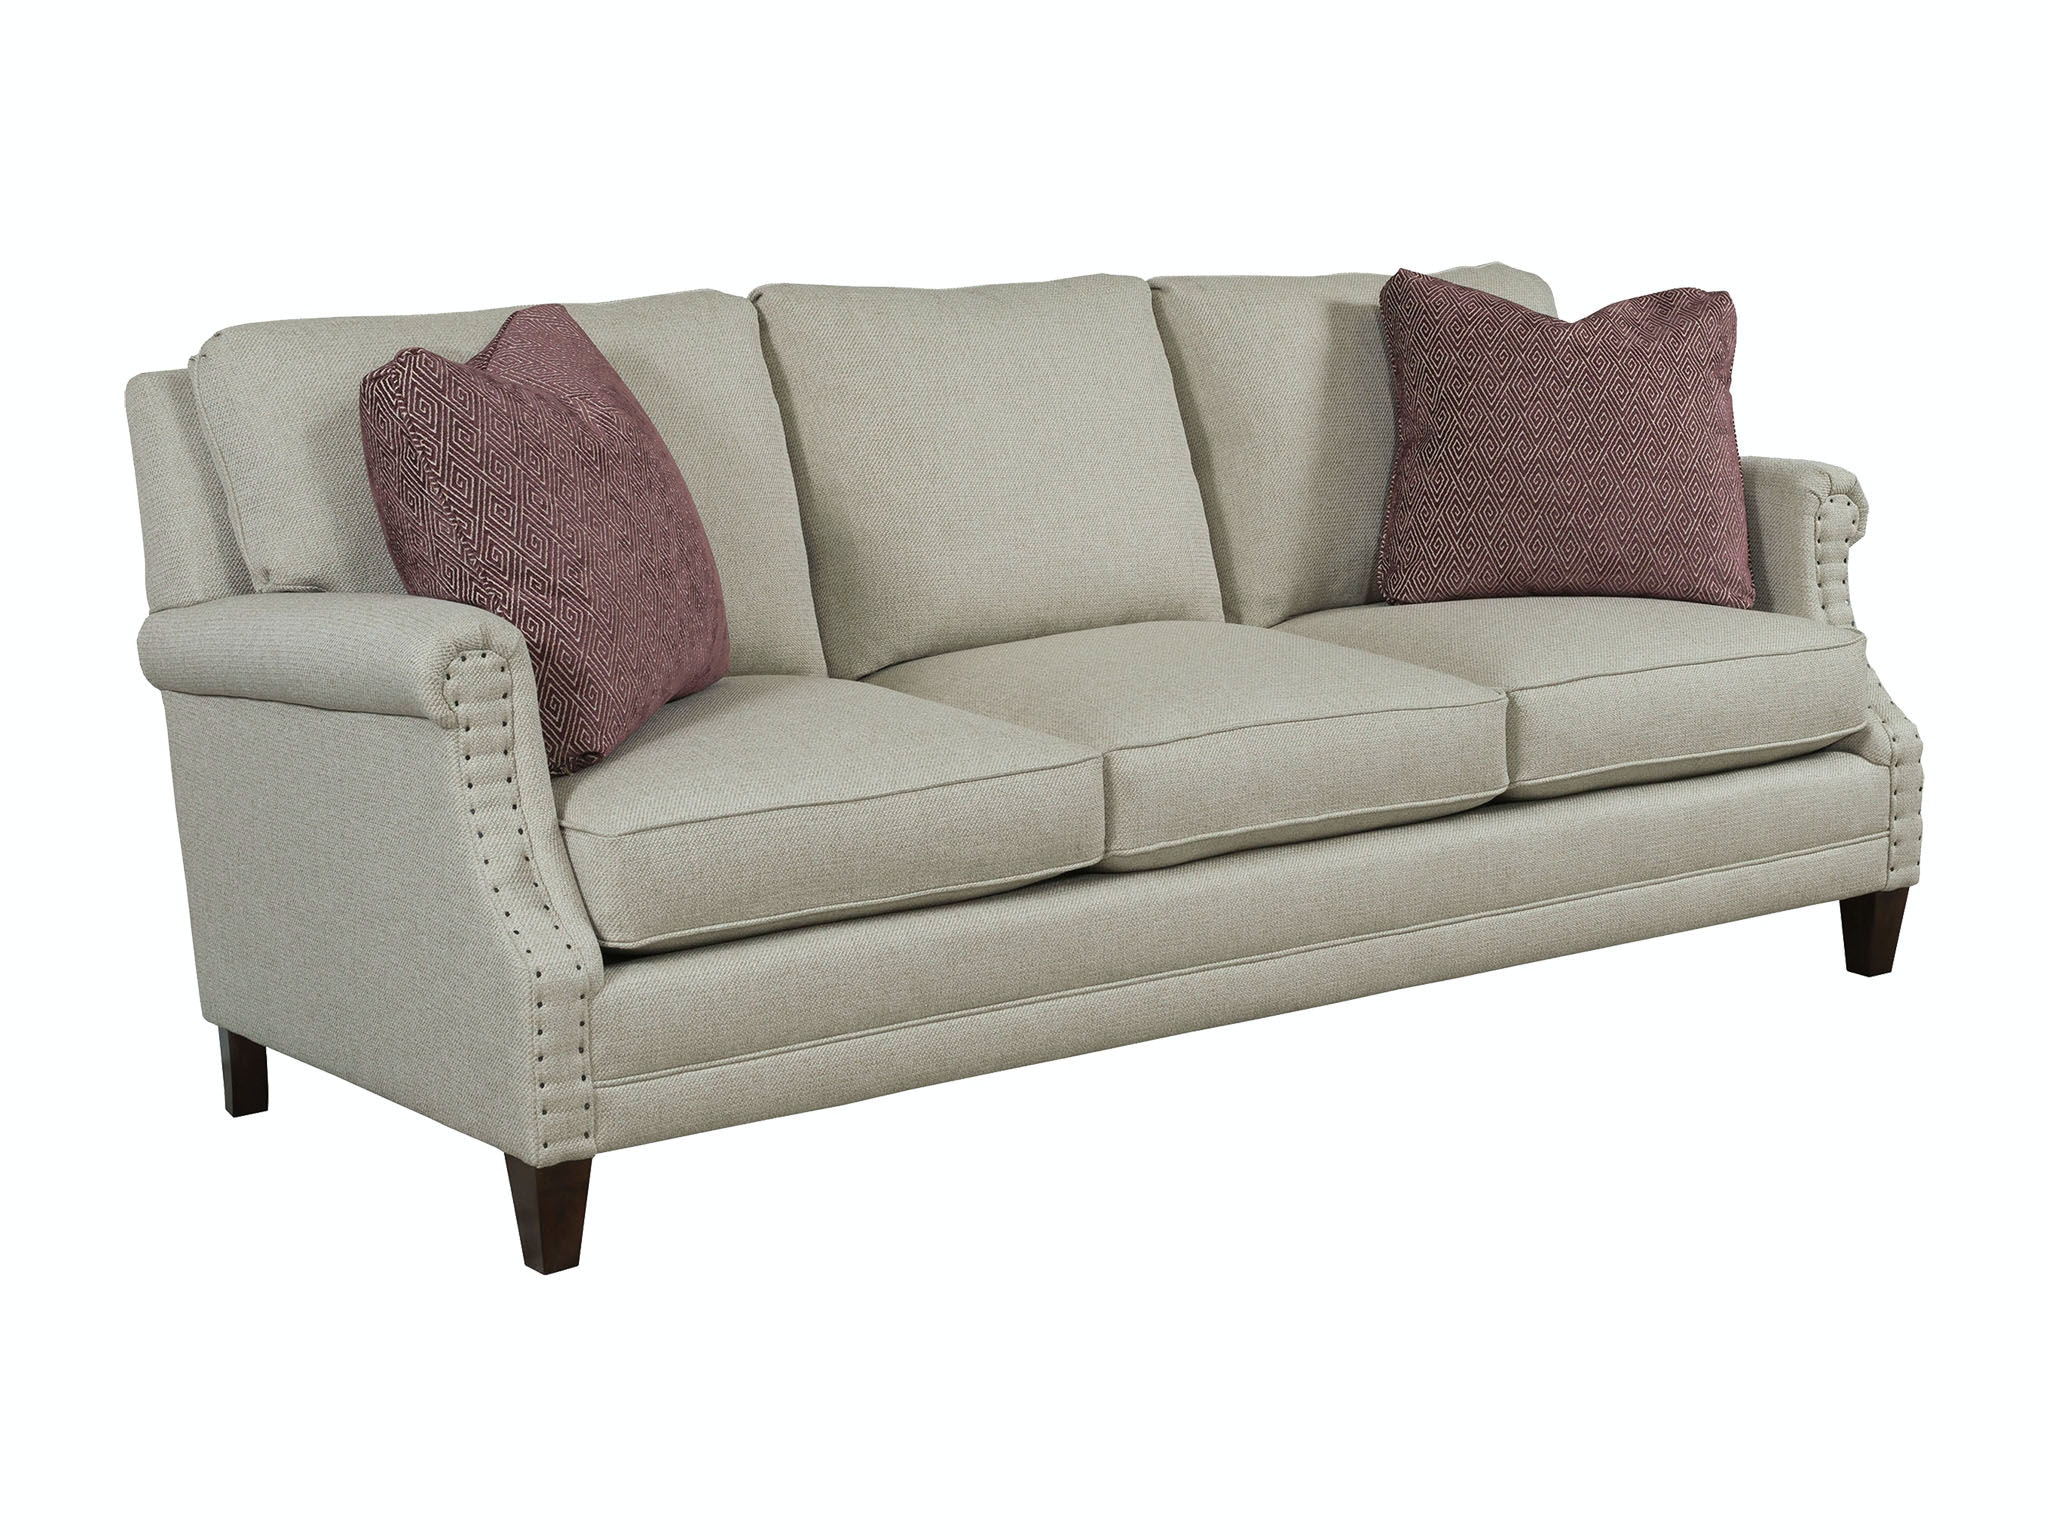 Kincaid Furniture Living Room Patterson Sofa 309 86 At New Ulm Furniture Co.